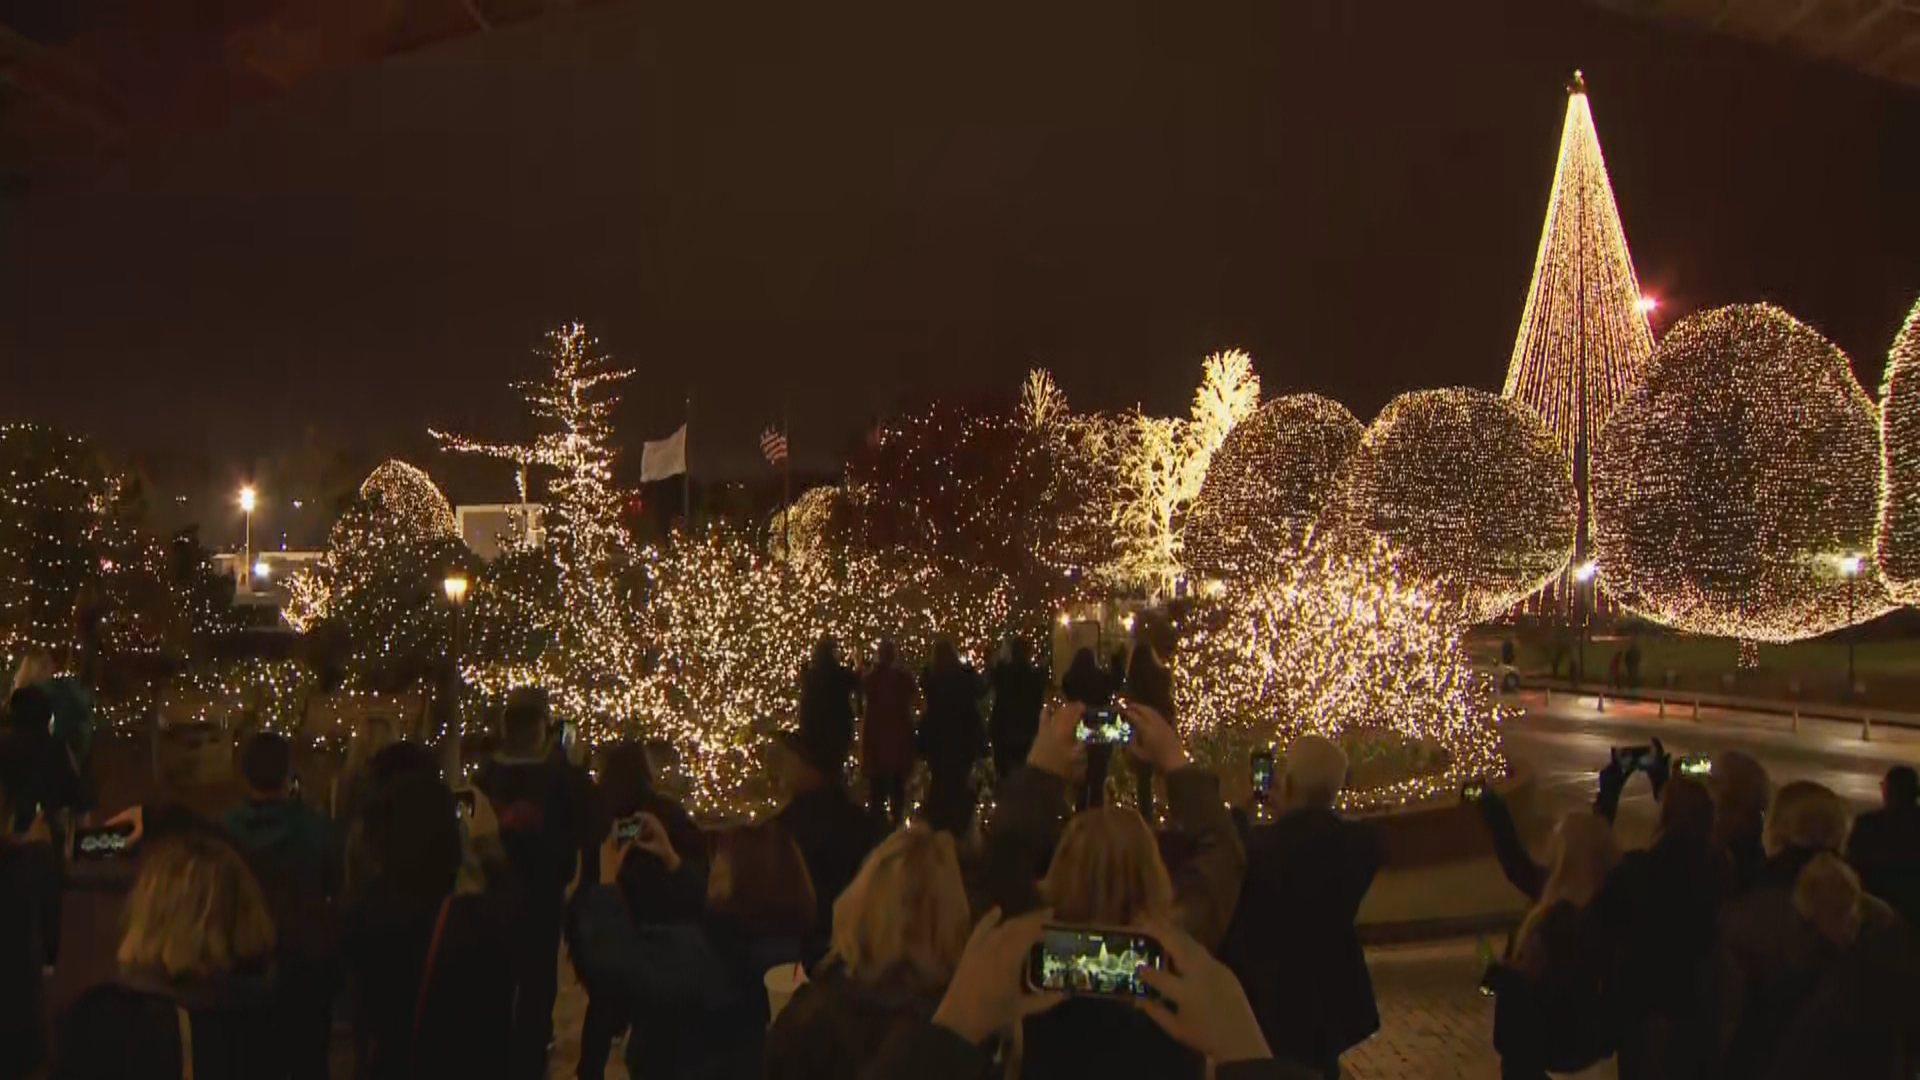 Christmas At Opryland 2020 Gaylord Opryland celebrates the holidays, turn on light display at